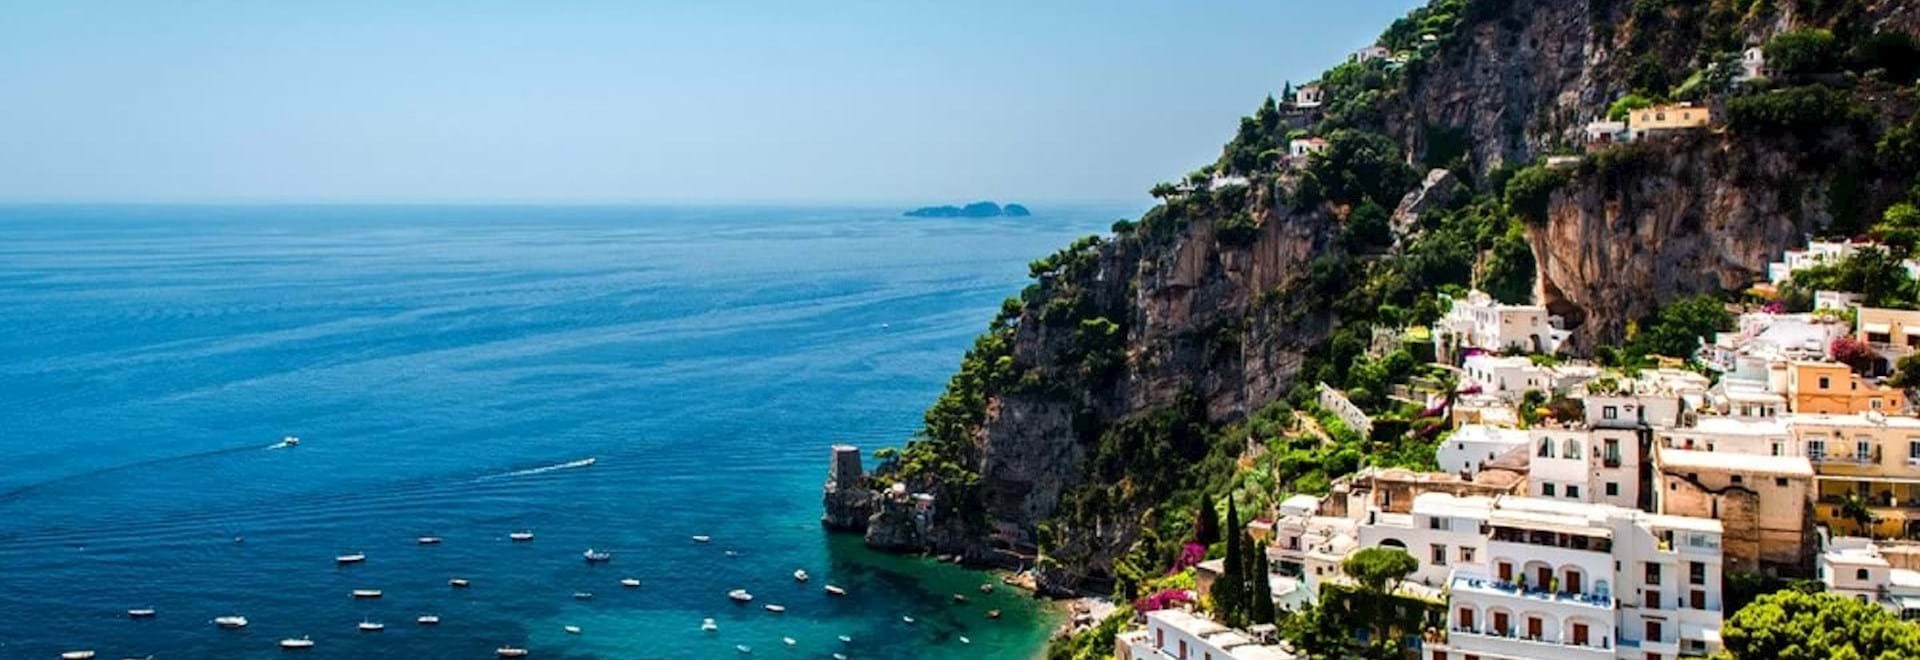 Amalfi Coast in the South of Italy